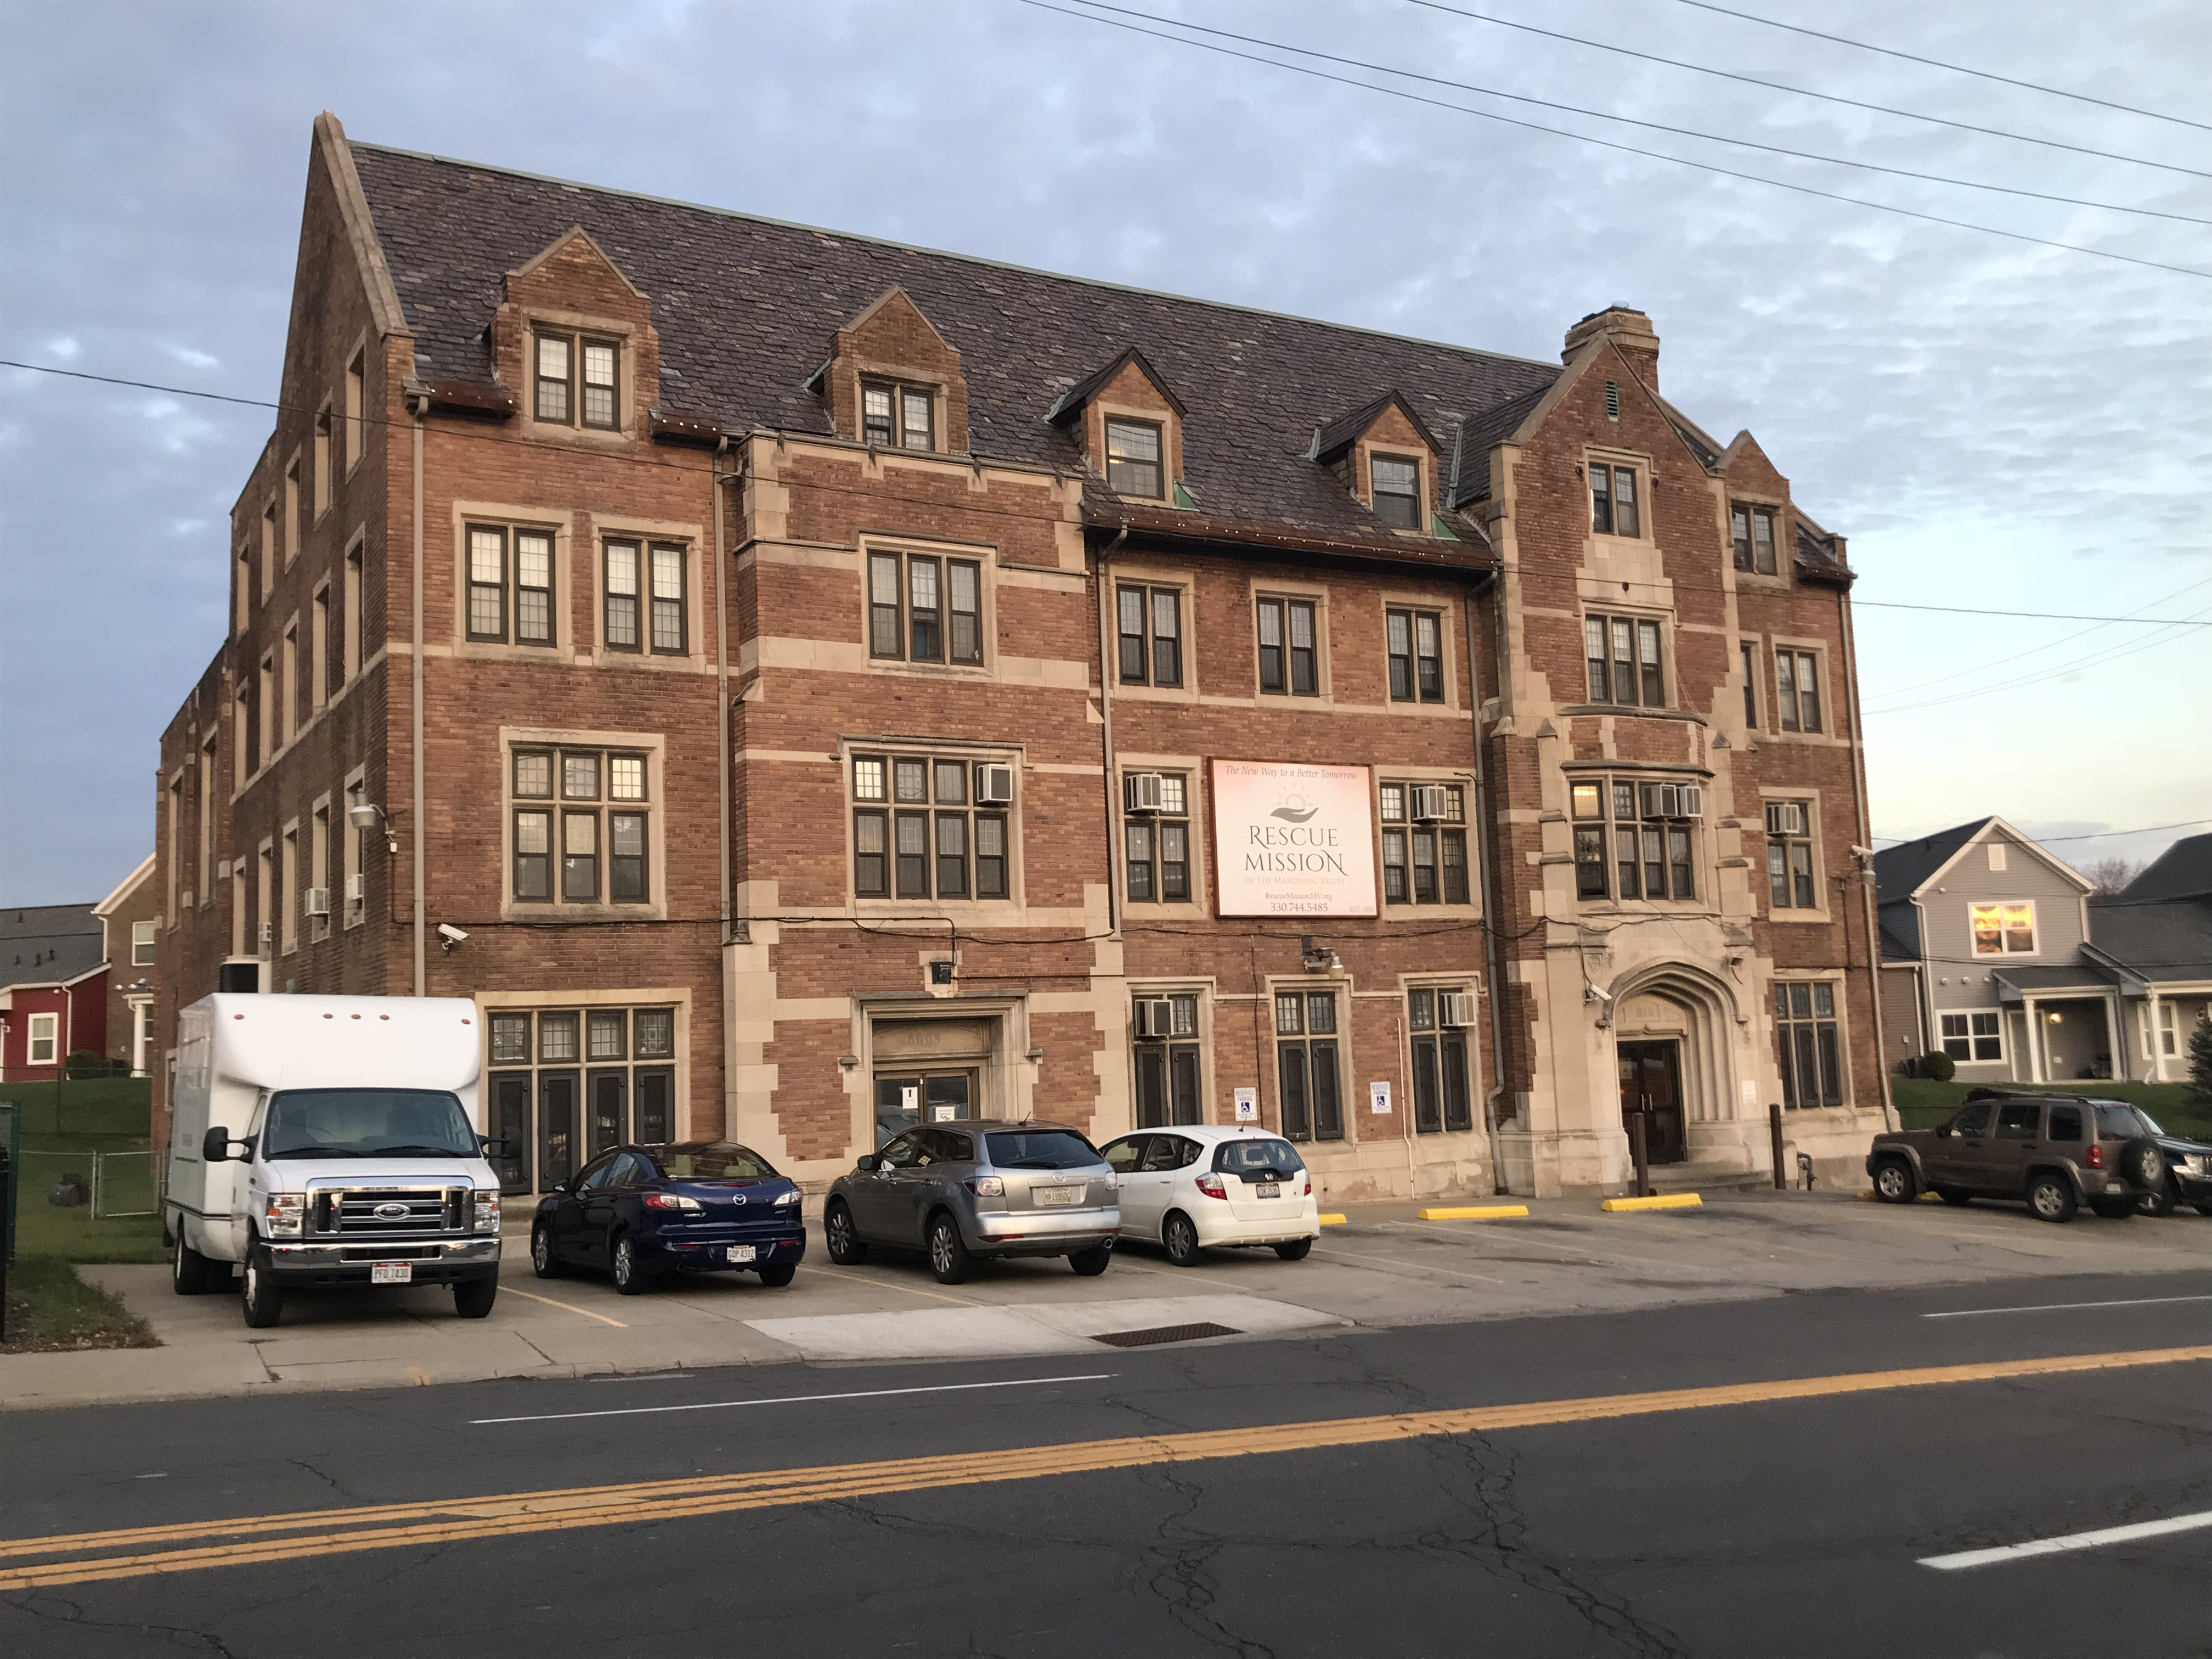 Image features a from-the-road photograph of the Rescue Mission building in Youngstown, Ohio, featured in the story Youngstown Rescue Mission's Intricate Ties to YSU, by Tyler Rothbauer.